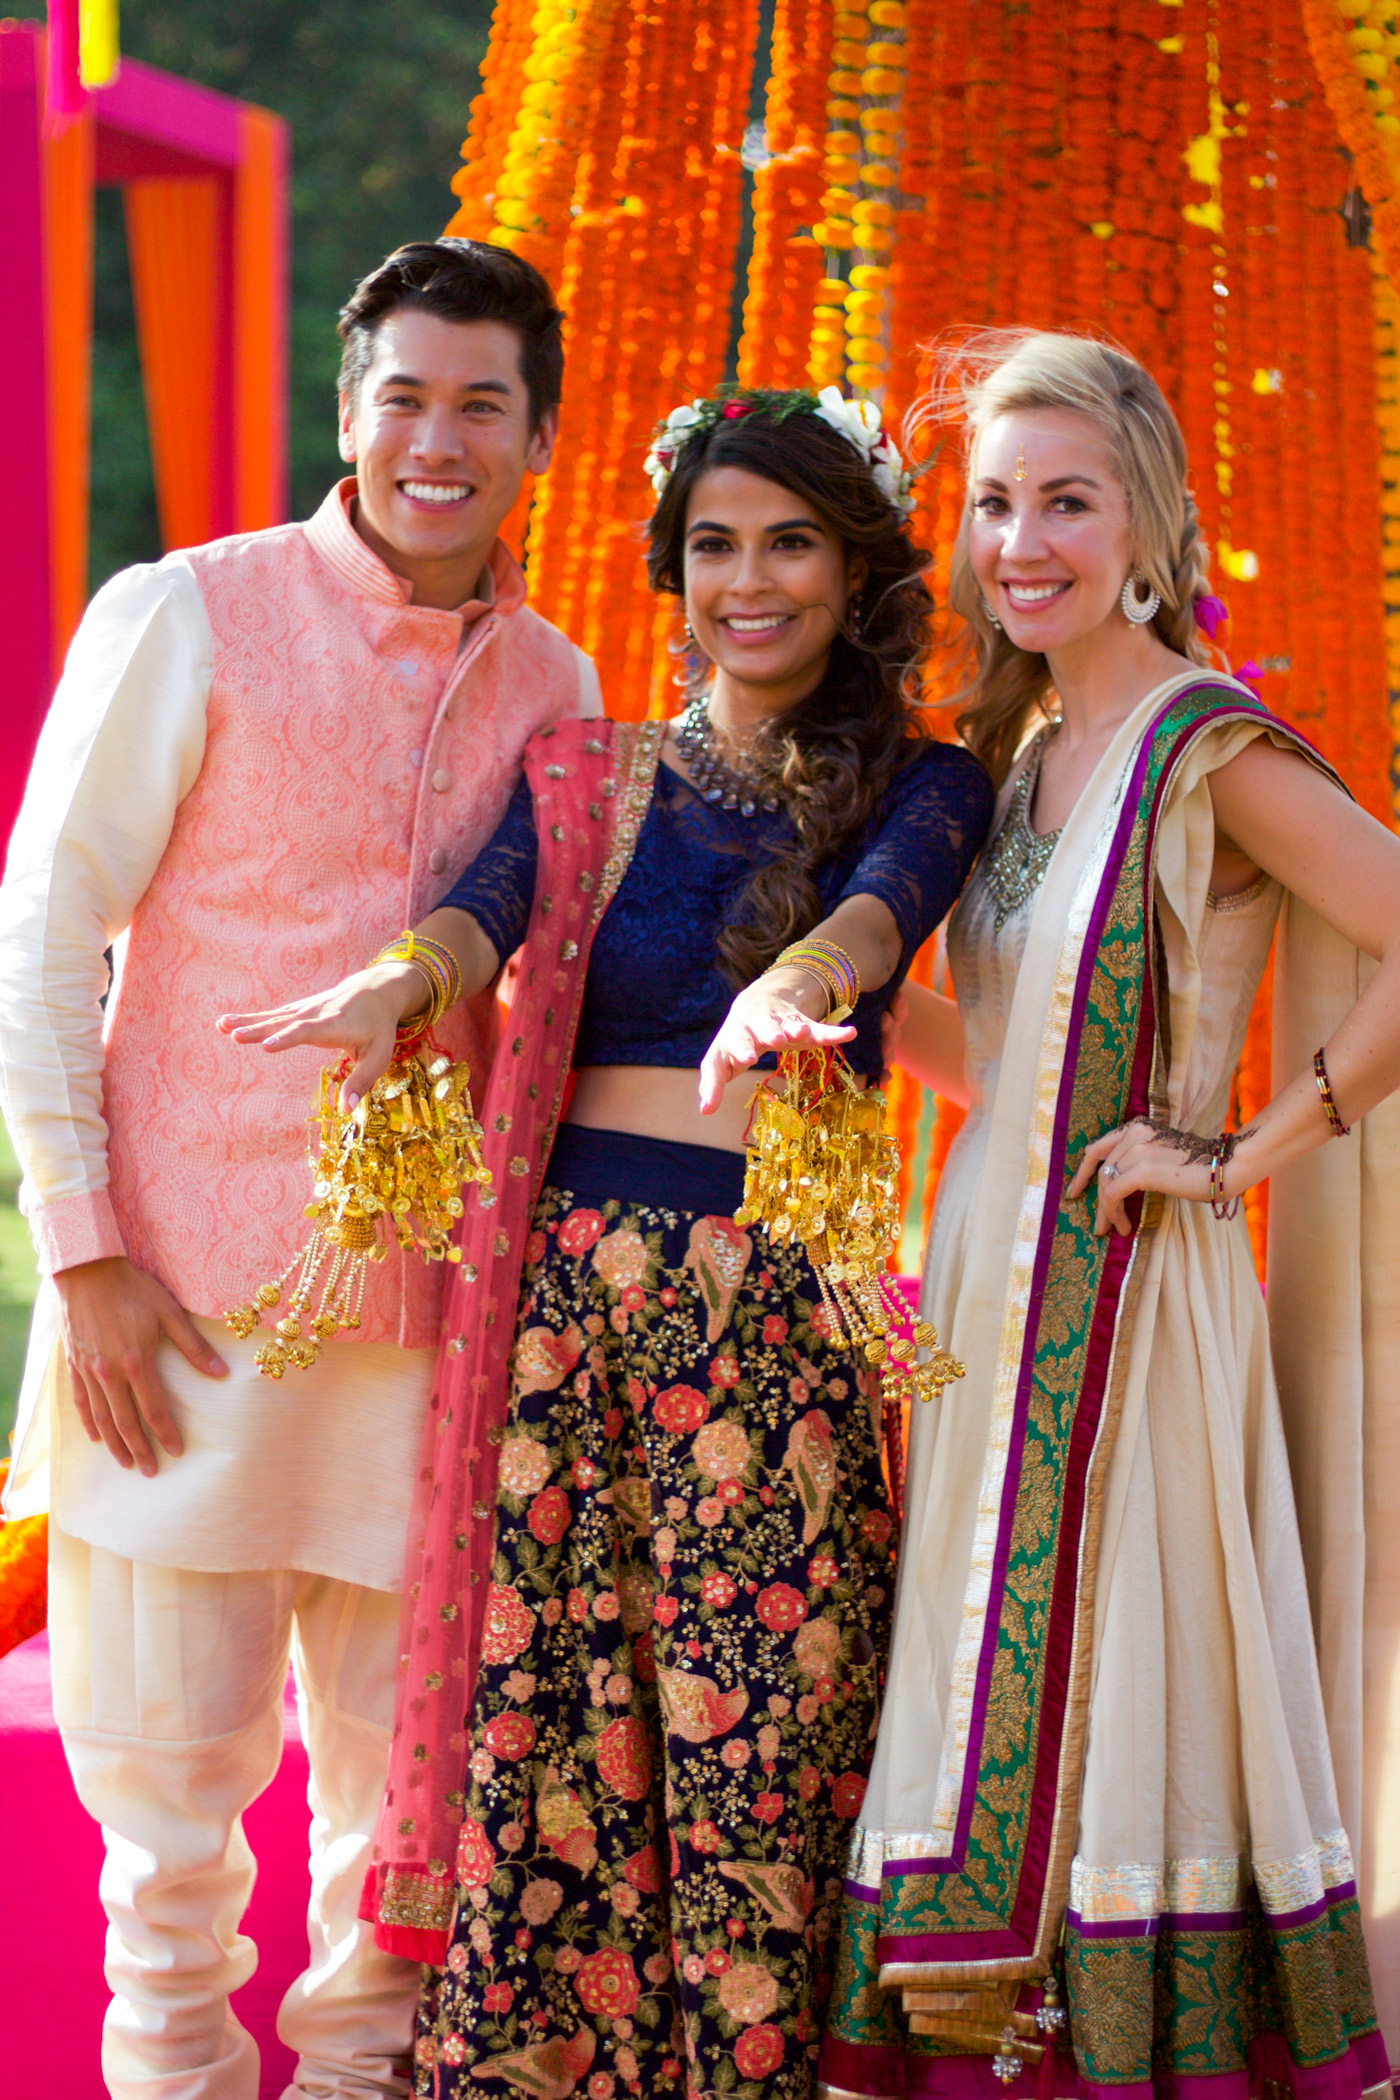 52ad76410d The First Timers Guide to Attending an Indian Wedding